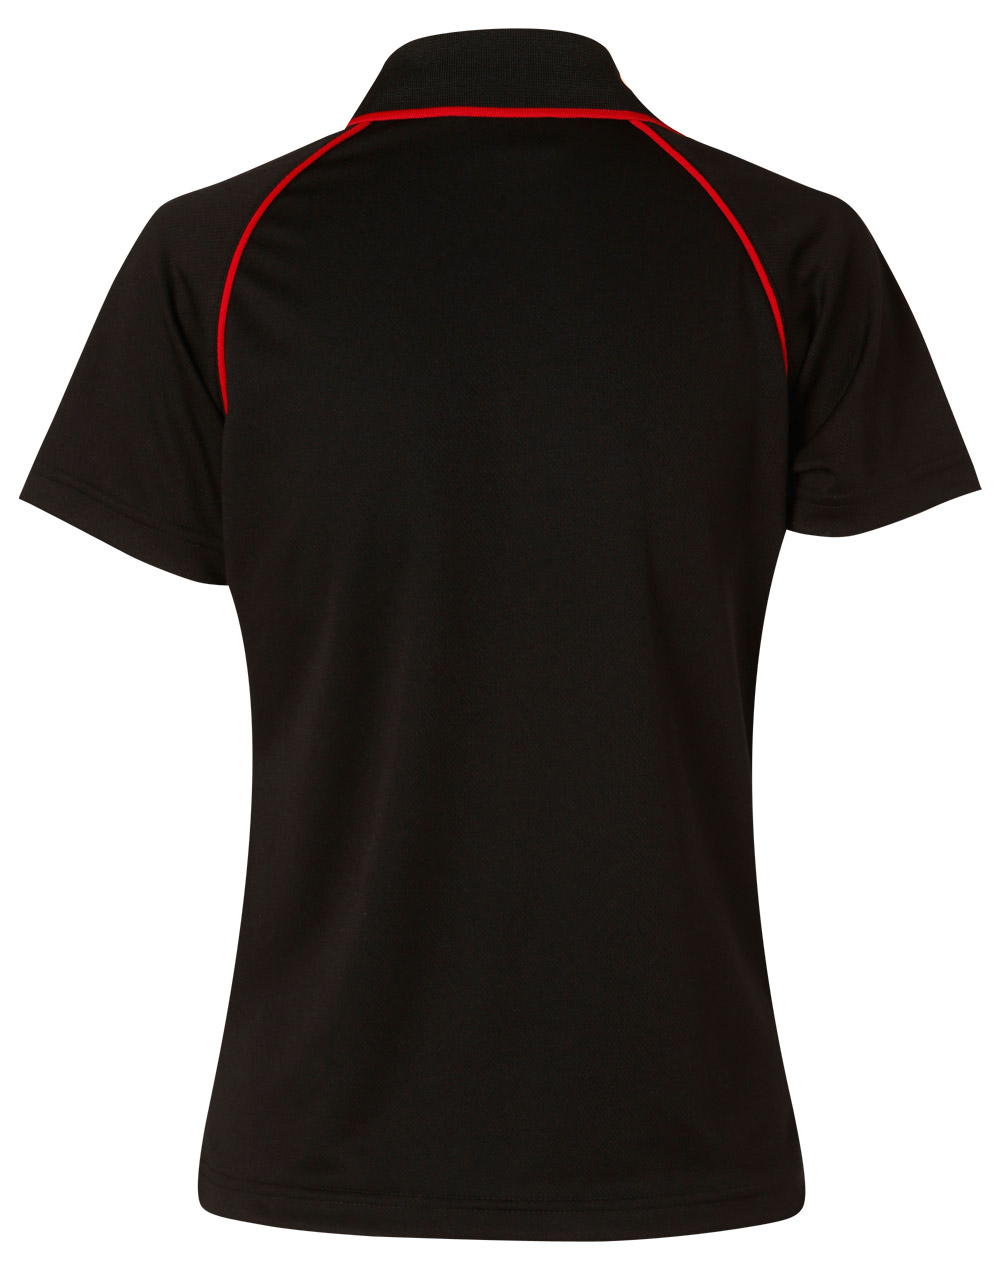 https://s3-ap-southeast-1.amazonaws.com/ws-imgs/POLOSHIRTS/PS19_Black.Red_Back.jpg